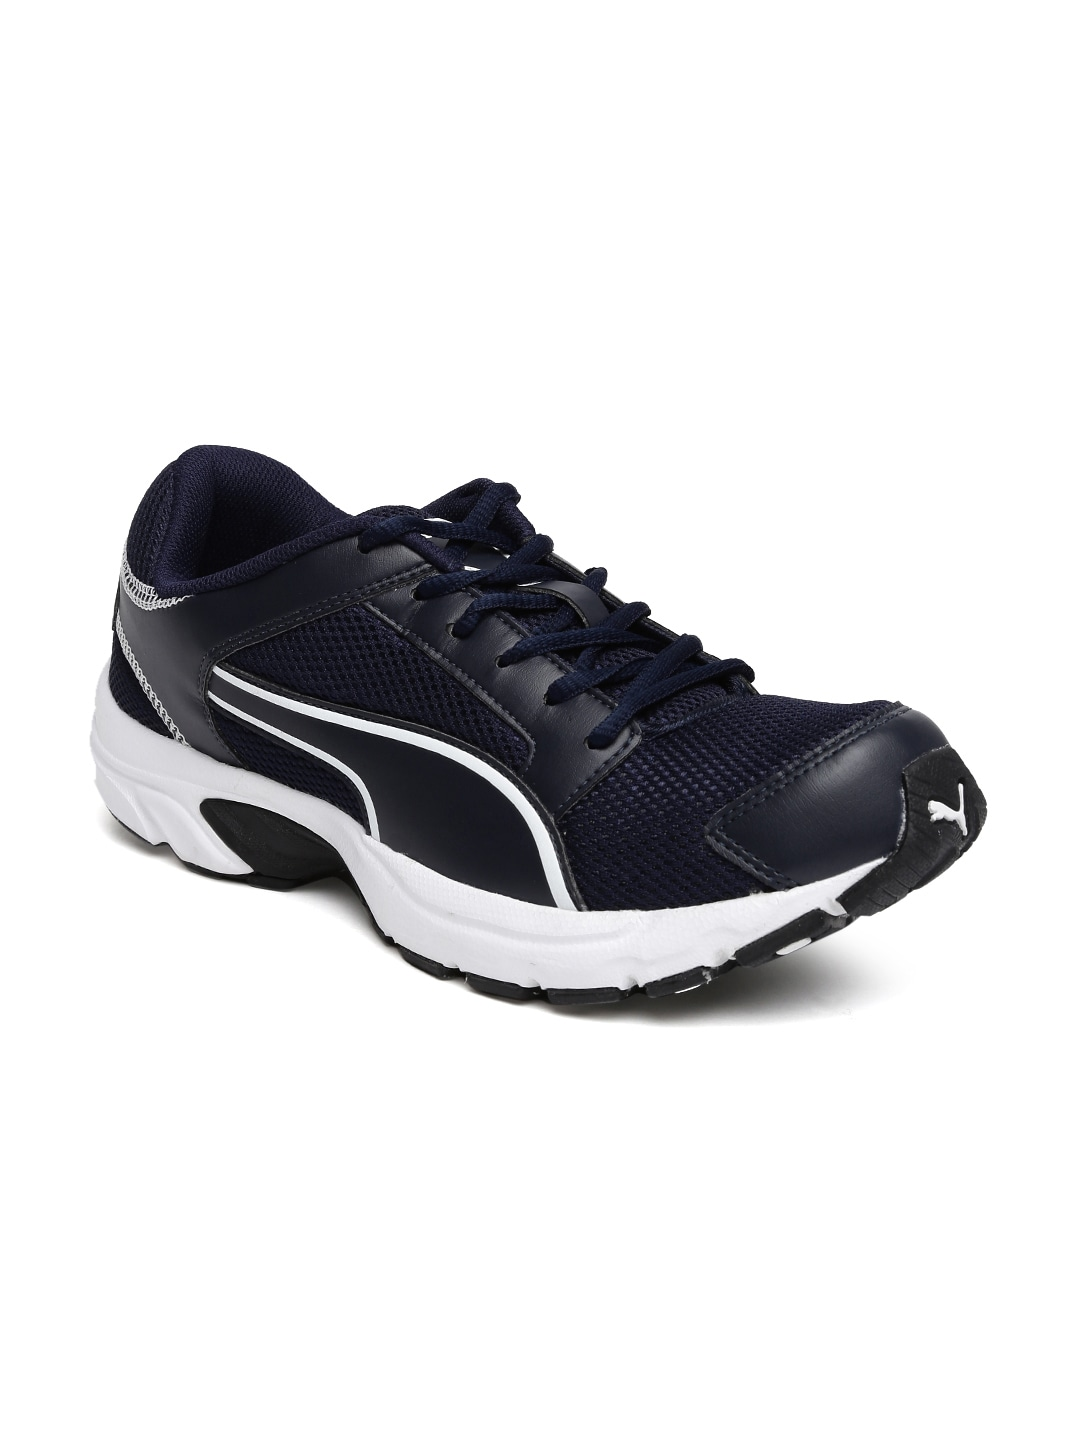 Puma Shoe For Men Casual Shoes Apparel Set - Buy Puma Shoe For Men Casual  Shoes Apparel Set online in India 7d76210fb